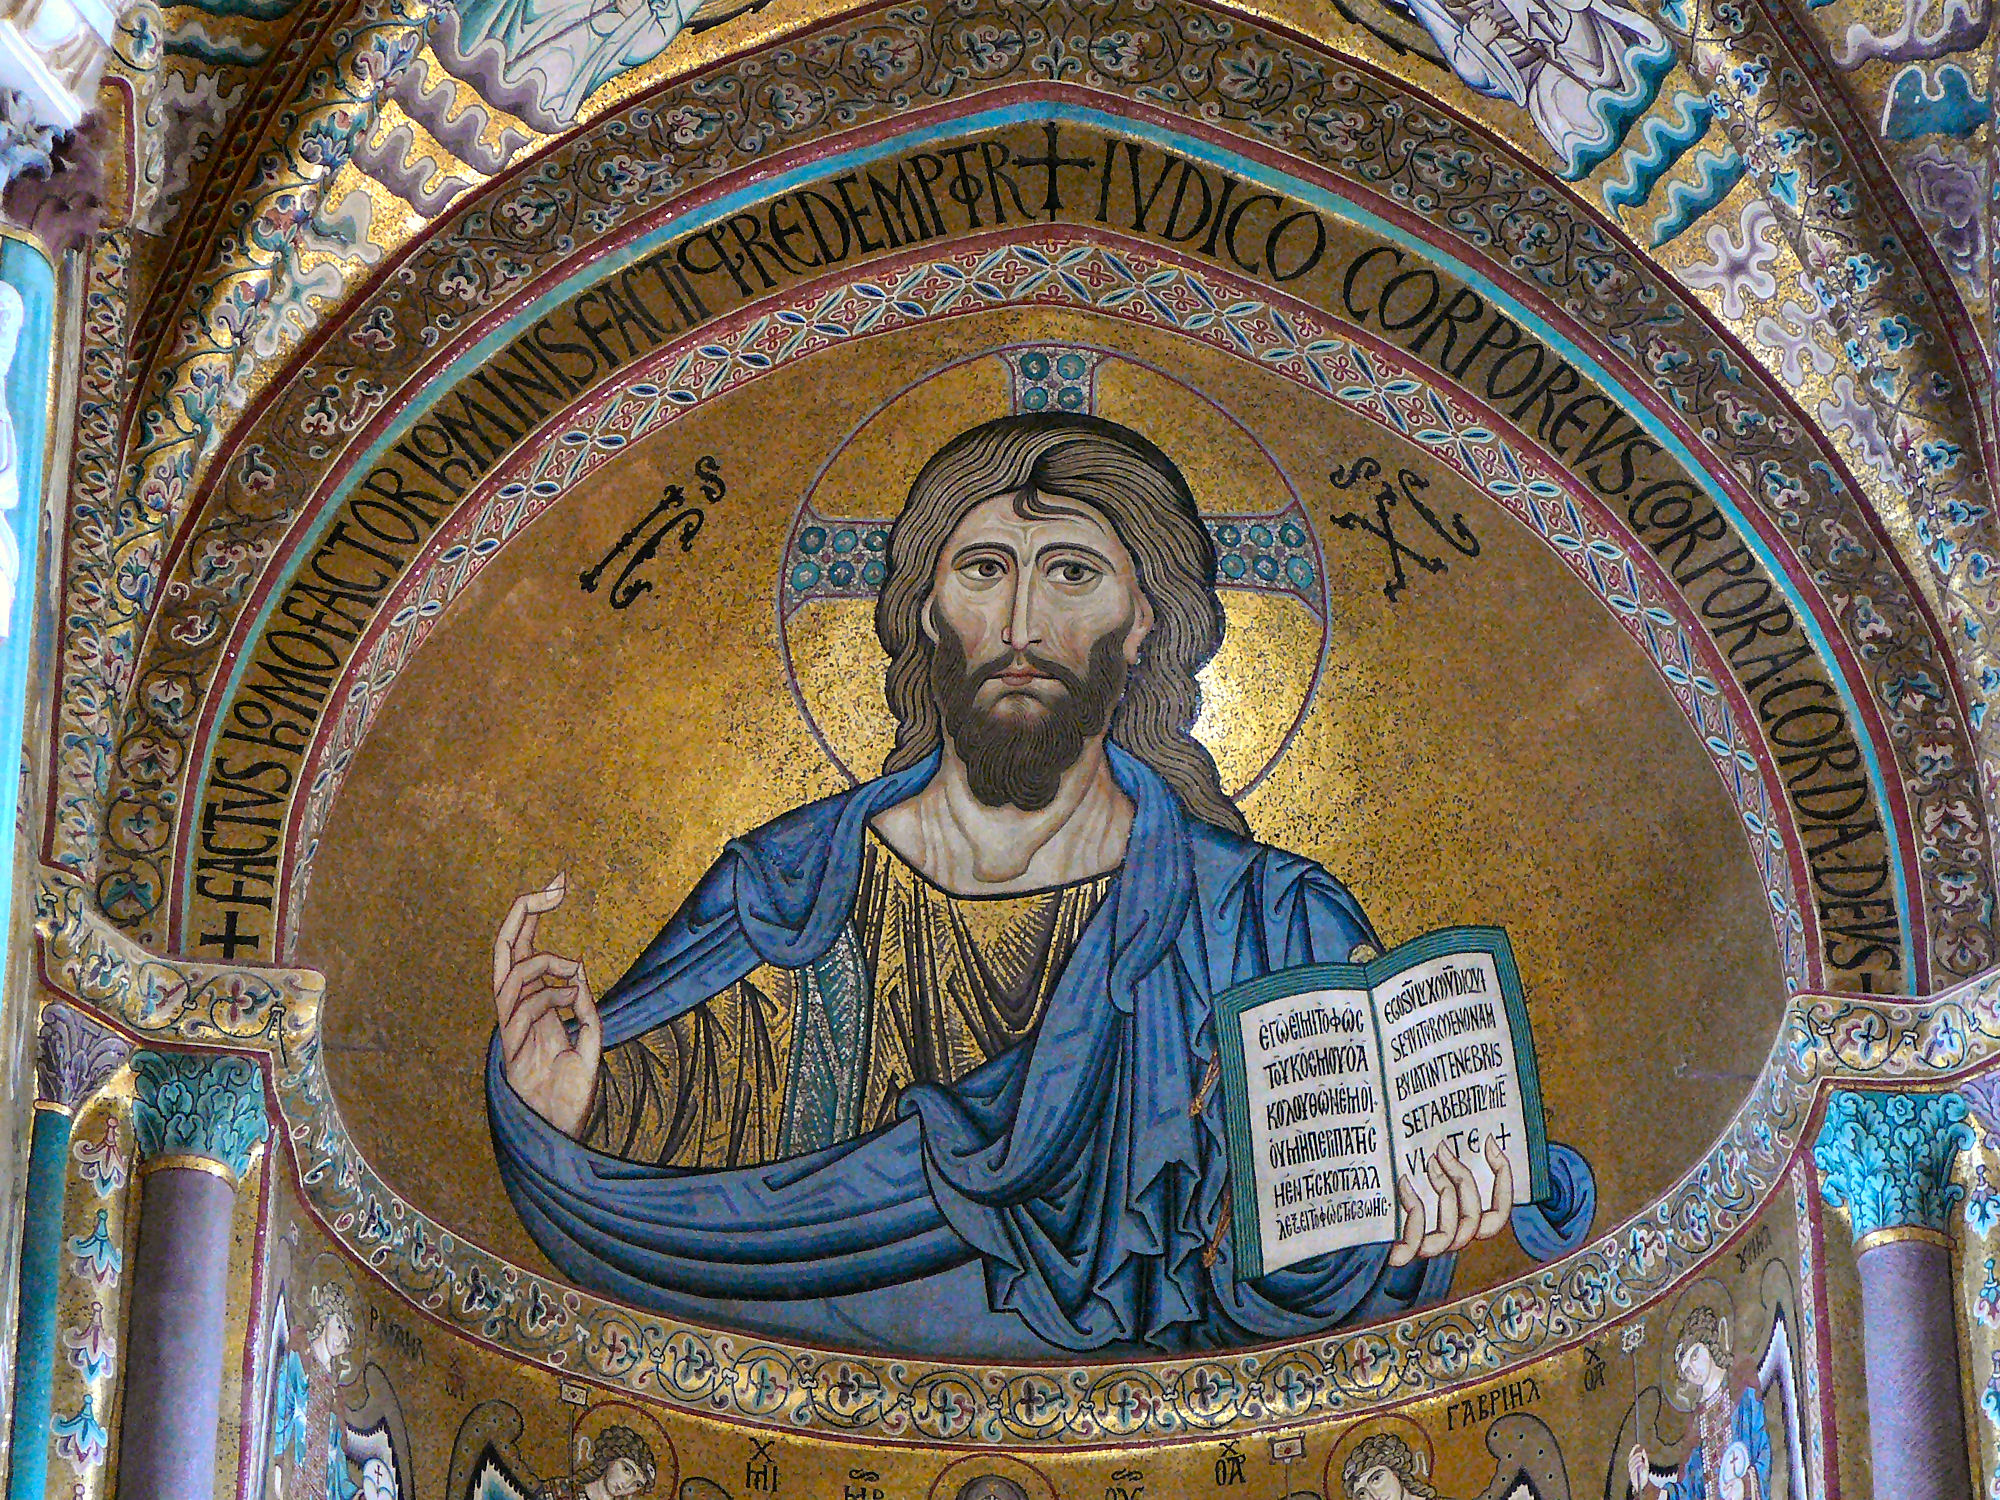 Christ_Pantokrator,_Cathedral_of_Cefalù,_Sicily.jpg